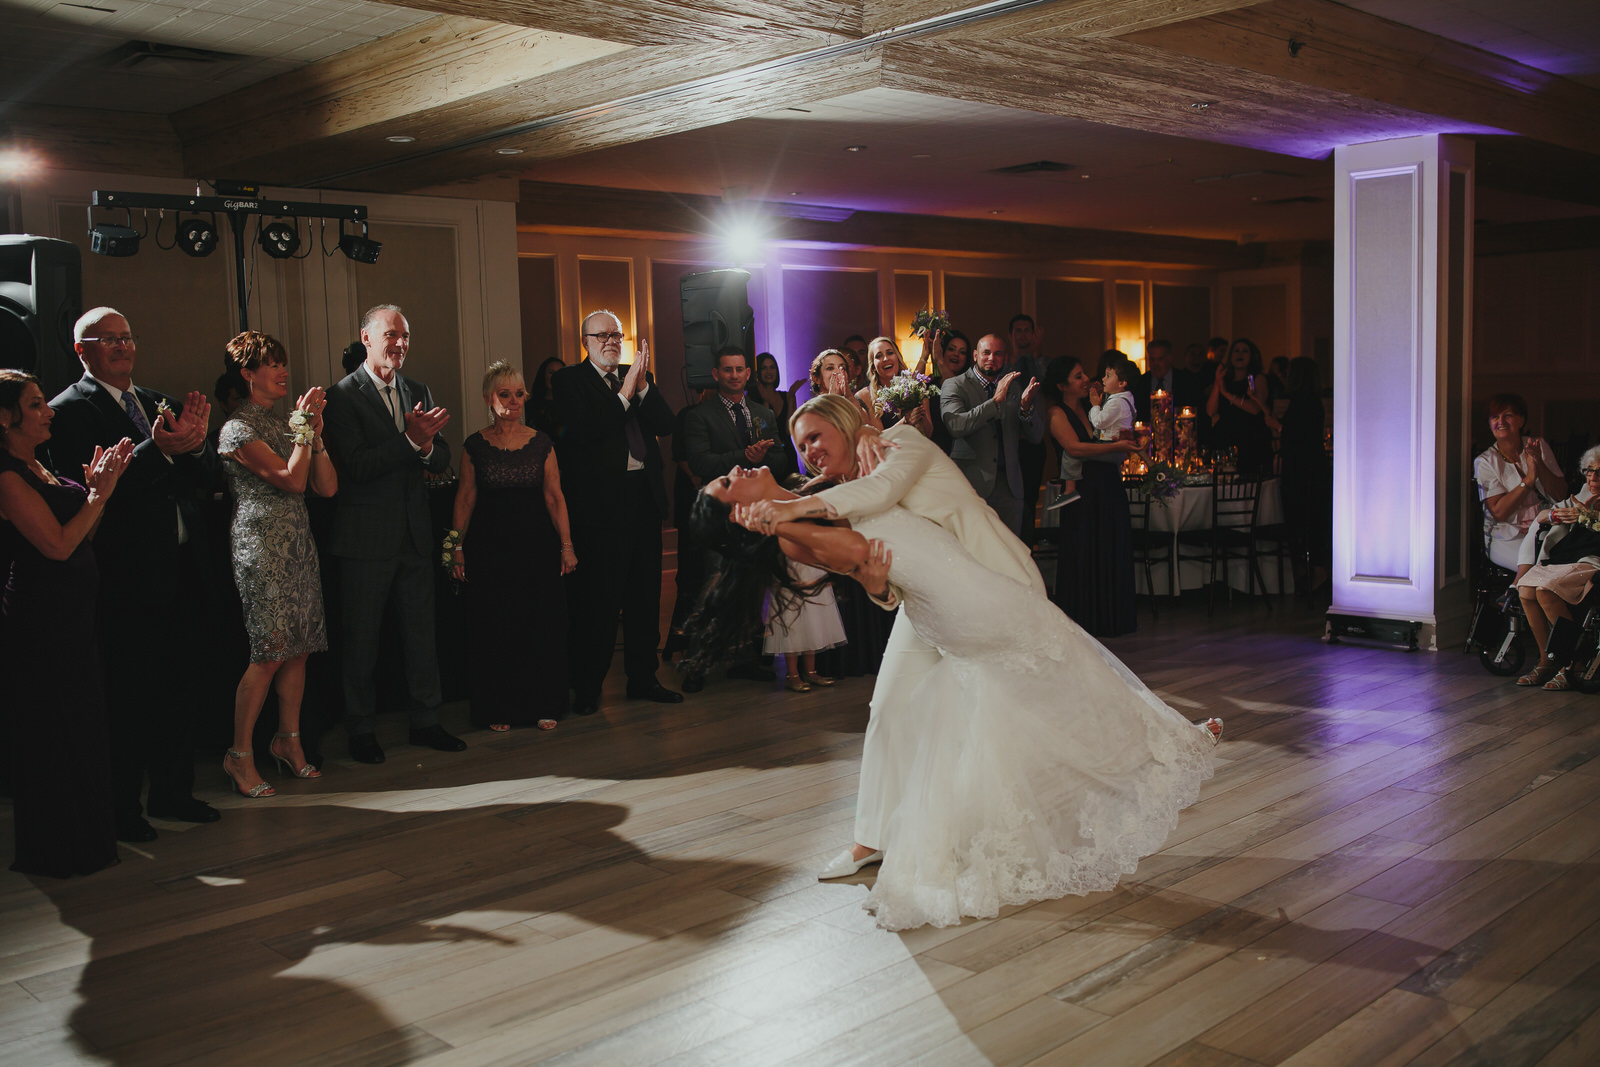 dip_baby_dip_first_dance_moments_tiny_house_photo.jpg